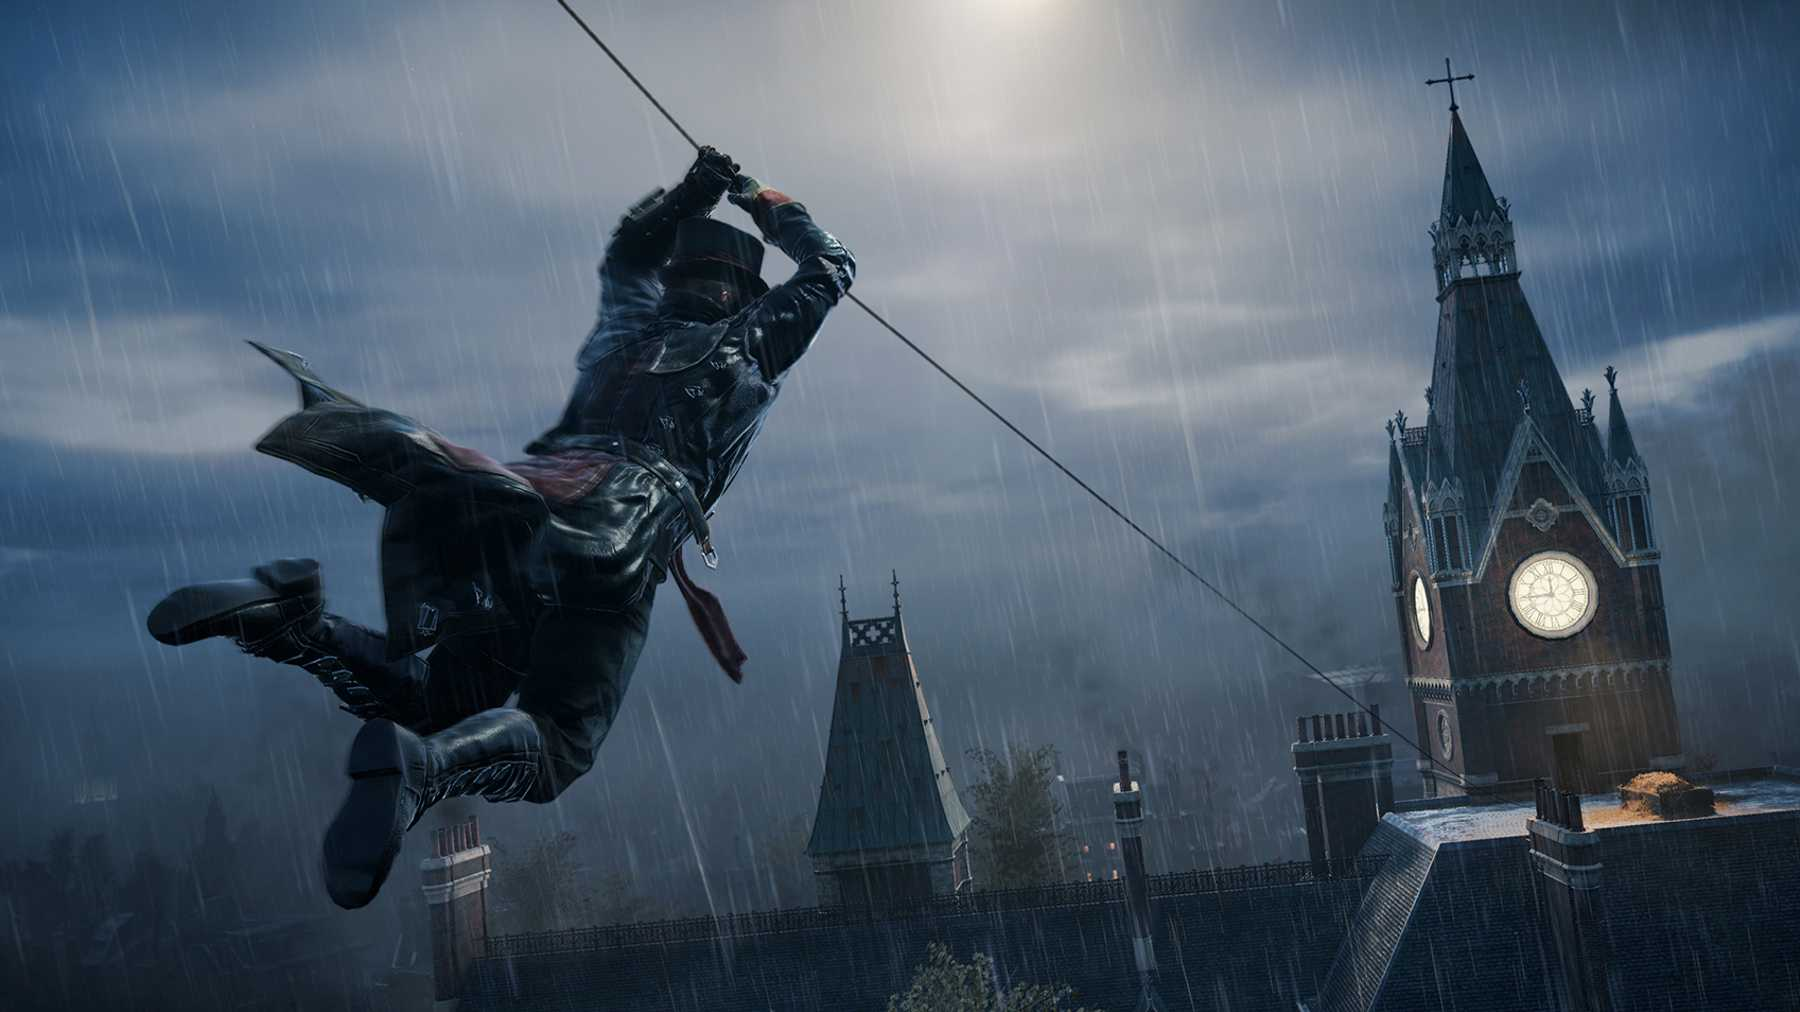 Assassin's Creed Syndicate is a surprising late entry for this week's free Epic game screenshot